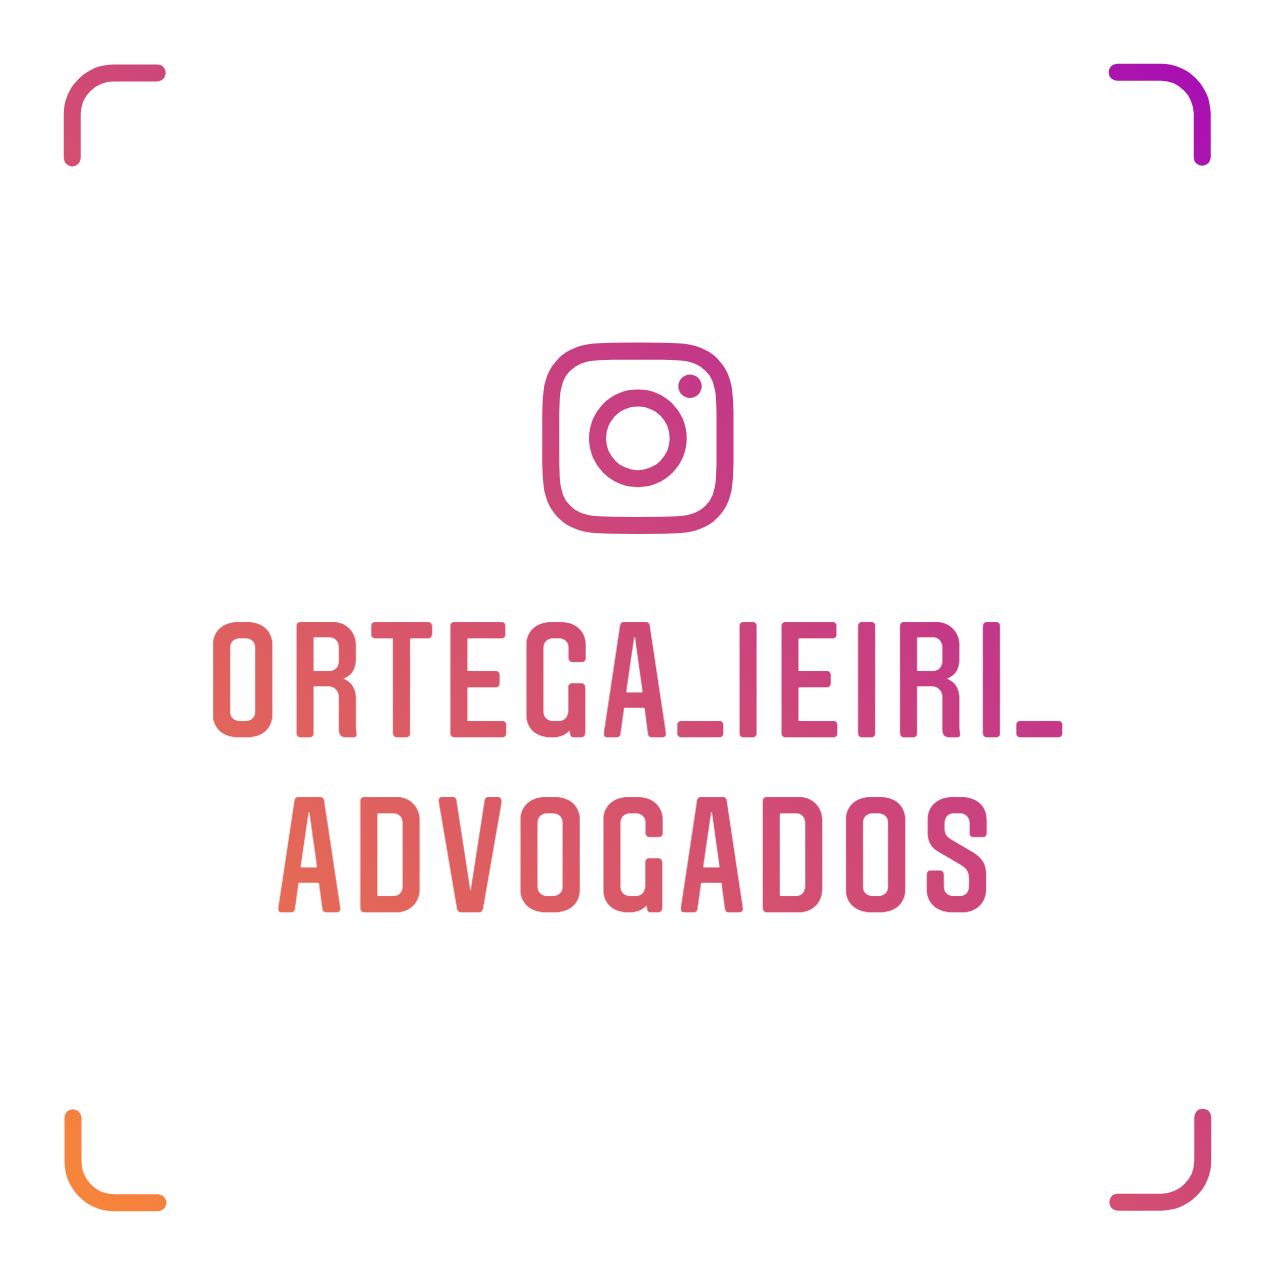 Instagram (Tag)